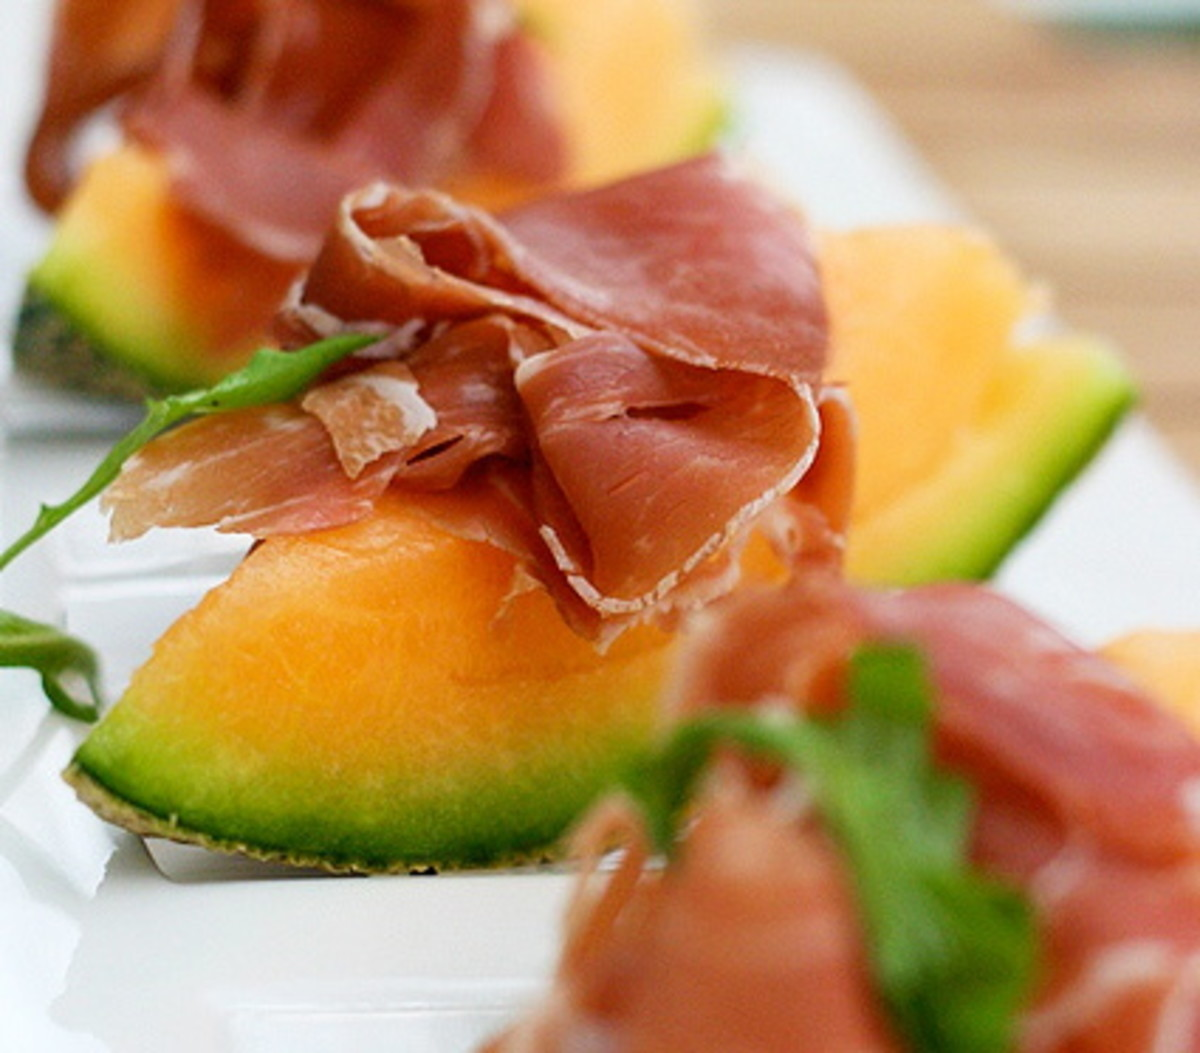 Melon and Parma Ham Starter